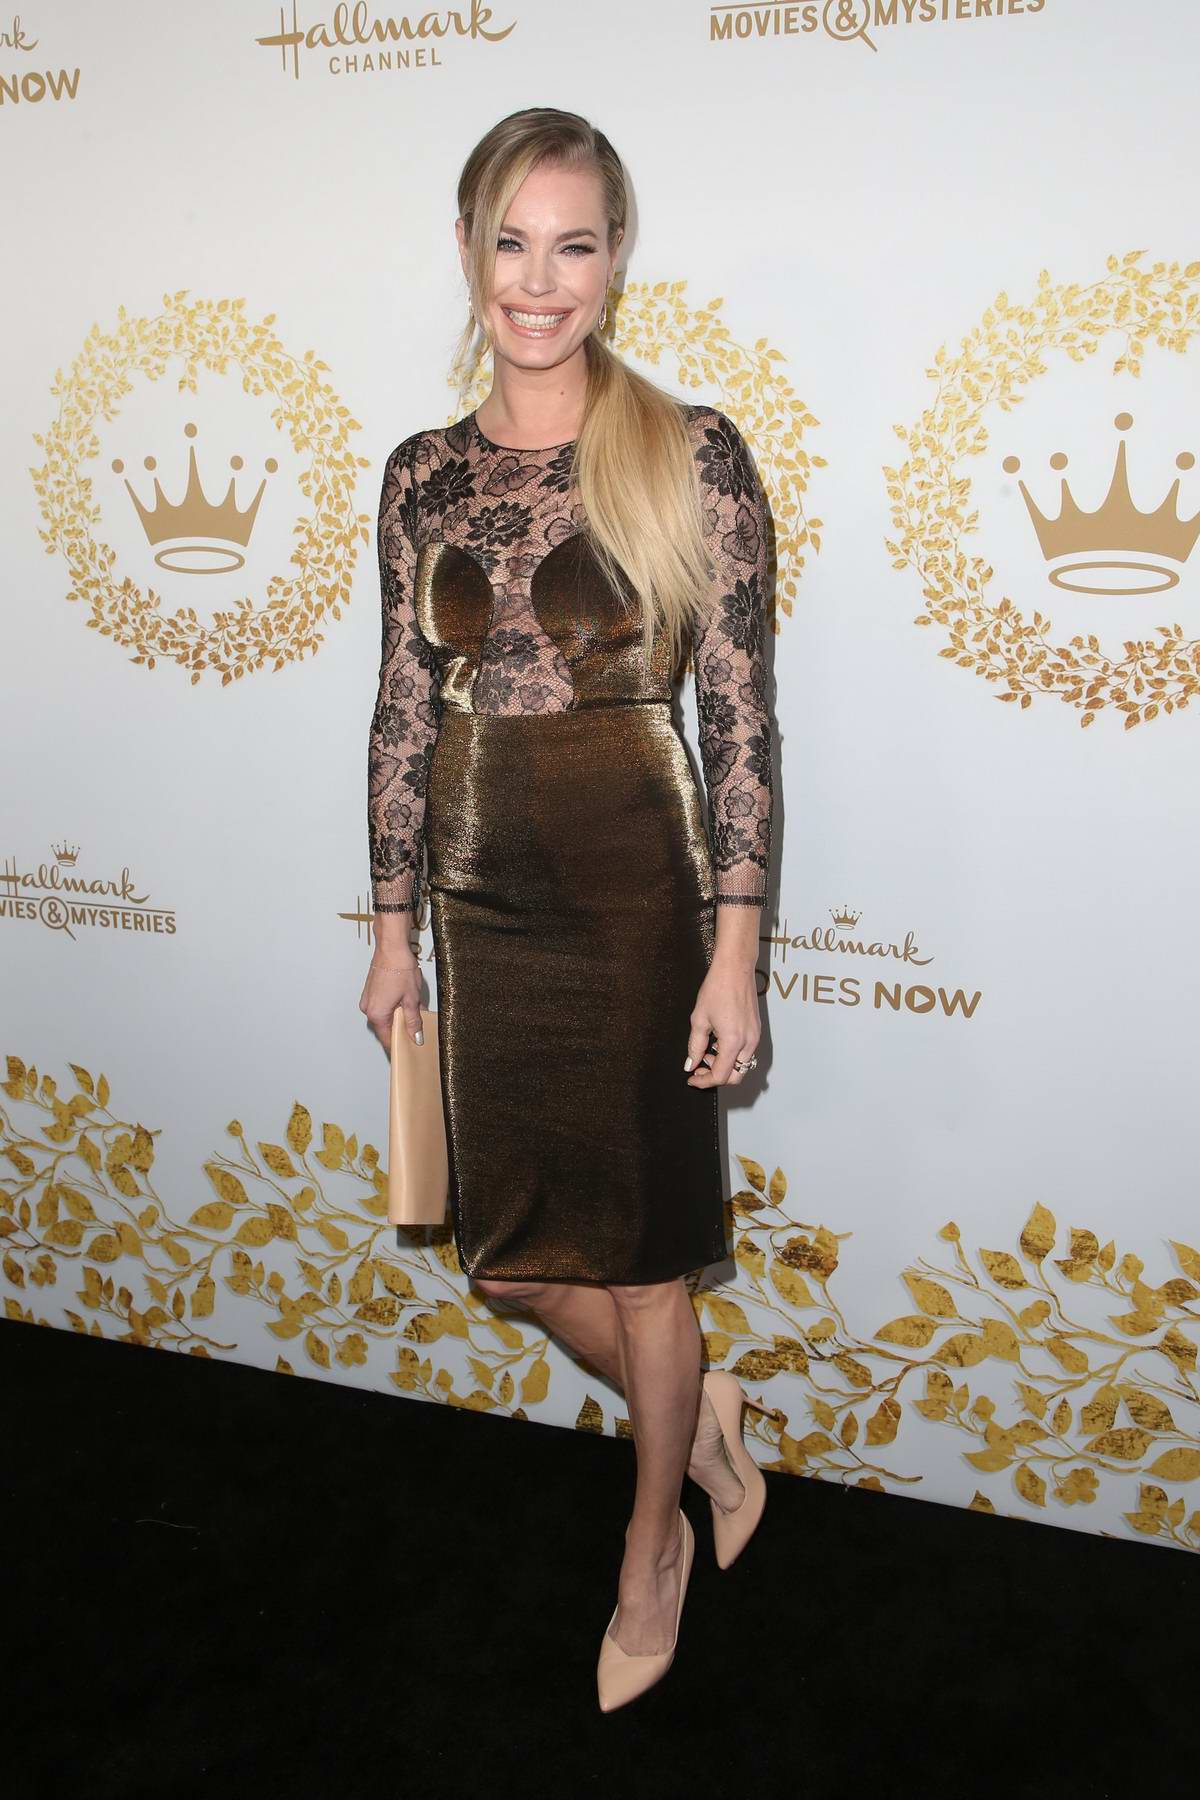 Rebecca Romijn attends Hallmark Channel TCA Winter Press Tour in Pasadena, California